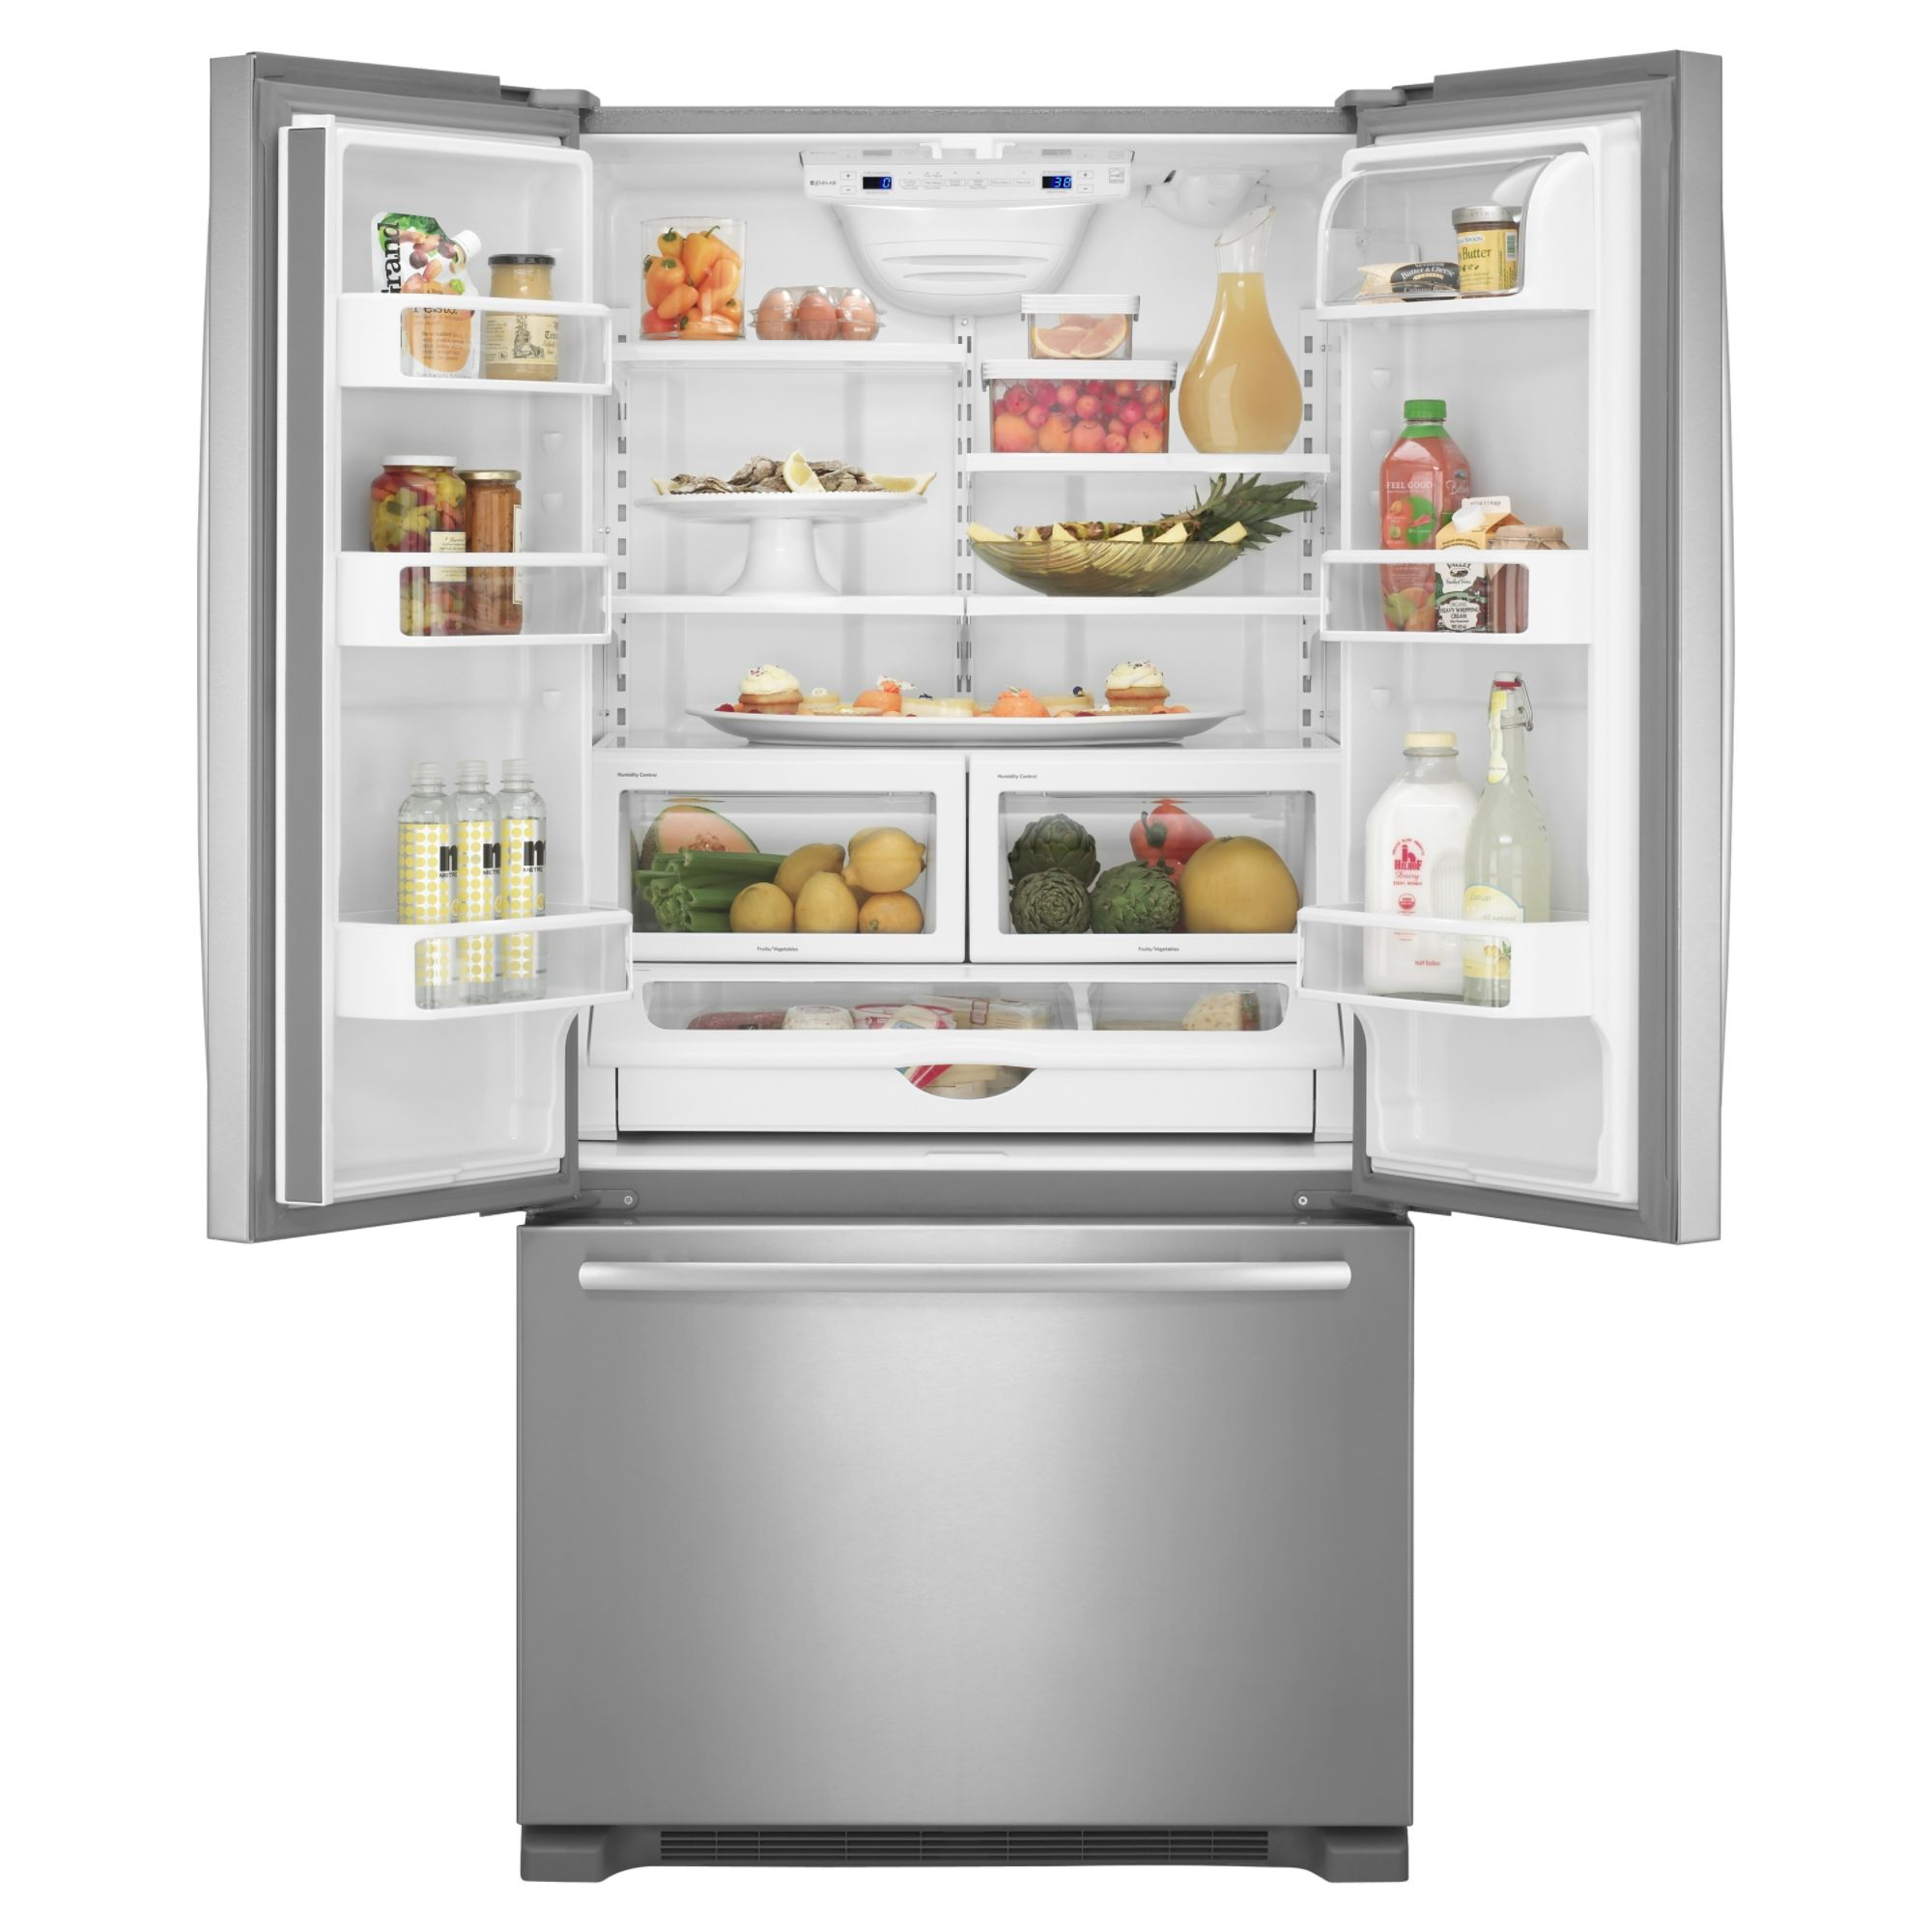 Jenn-Air 21.8 cu. ft. Built-In French-Door Bottom Freezer Refrigerator w/ Internal Dispenser